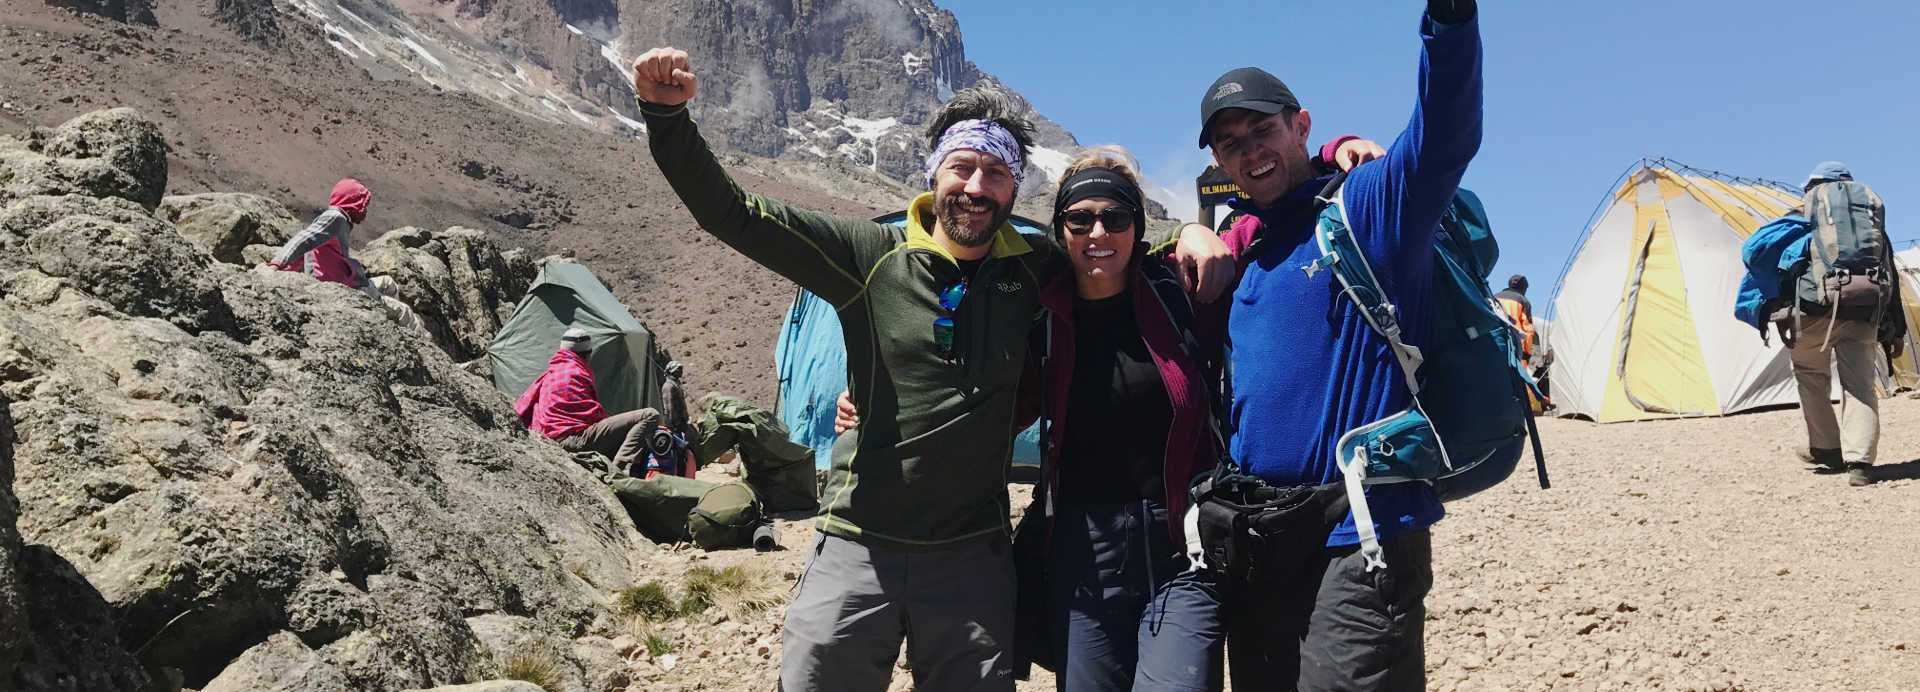 Jon Leonard climbs Kilimanjaro with Ultra Adventures